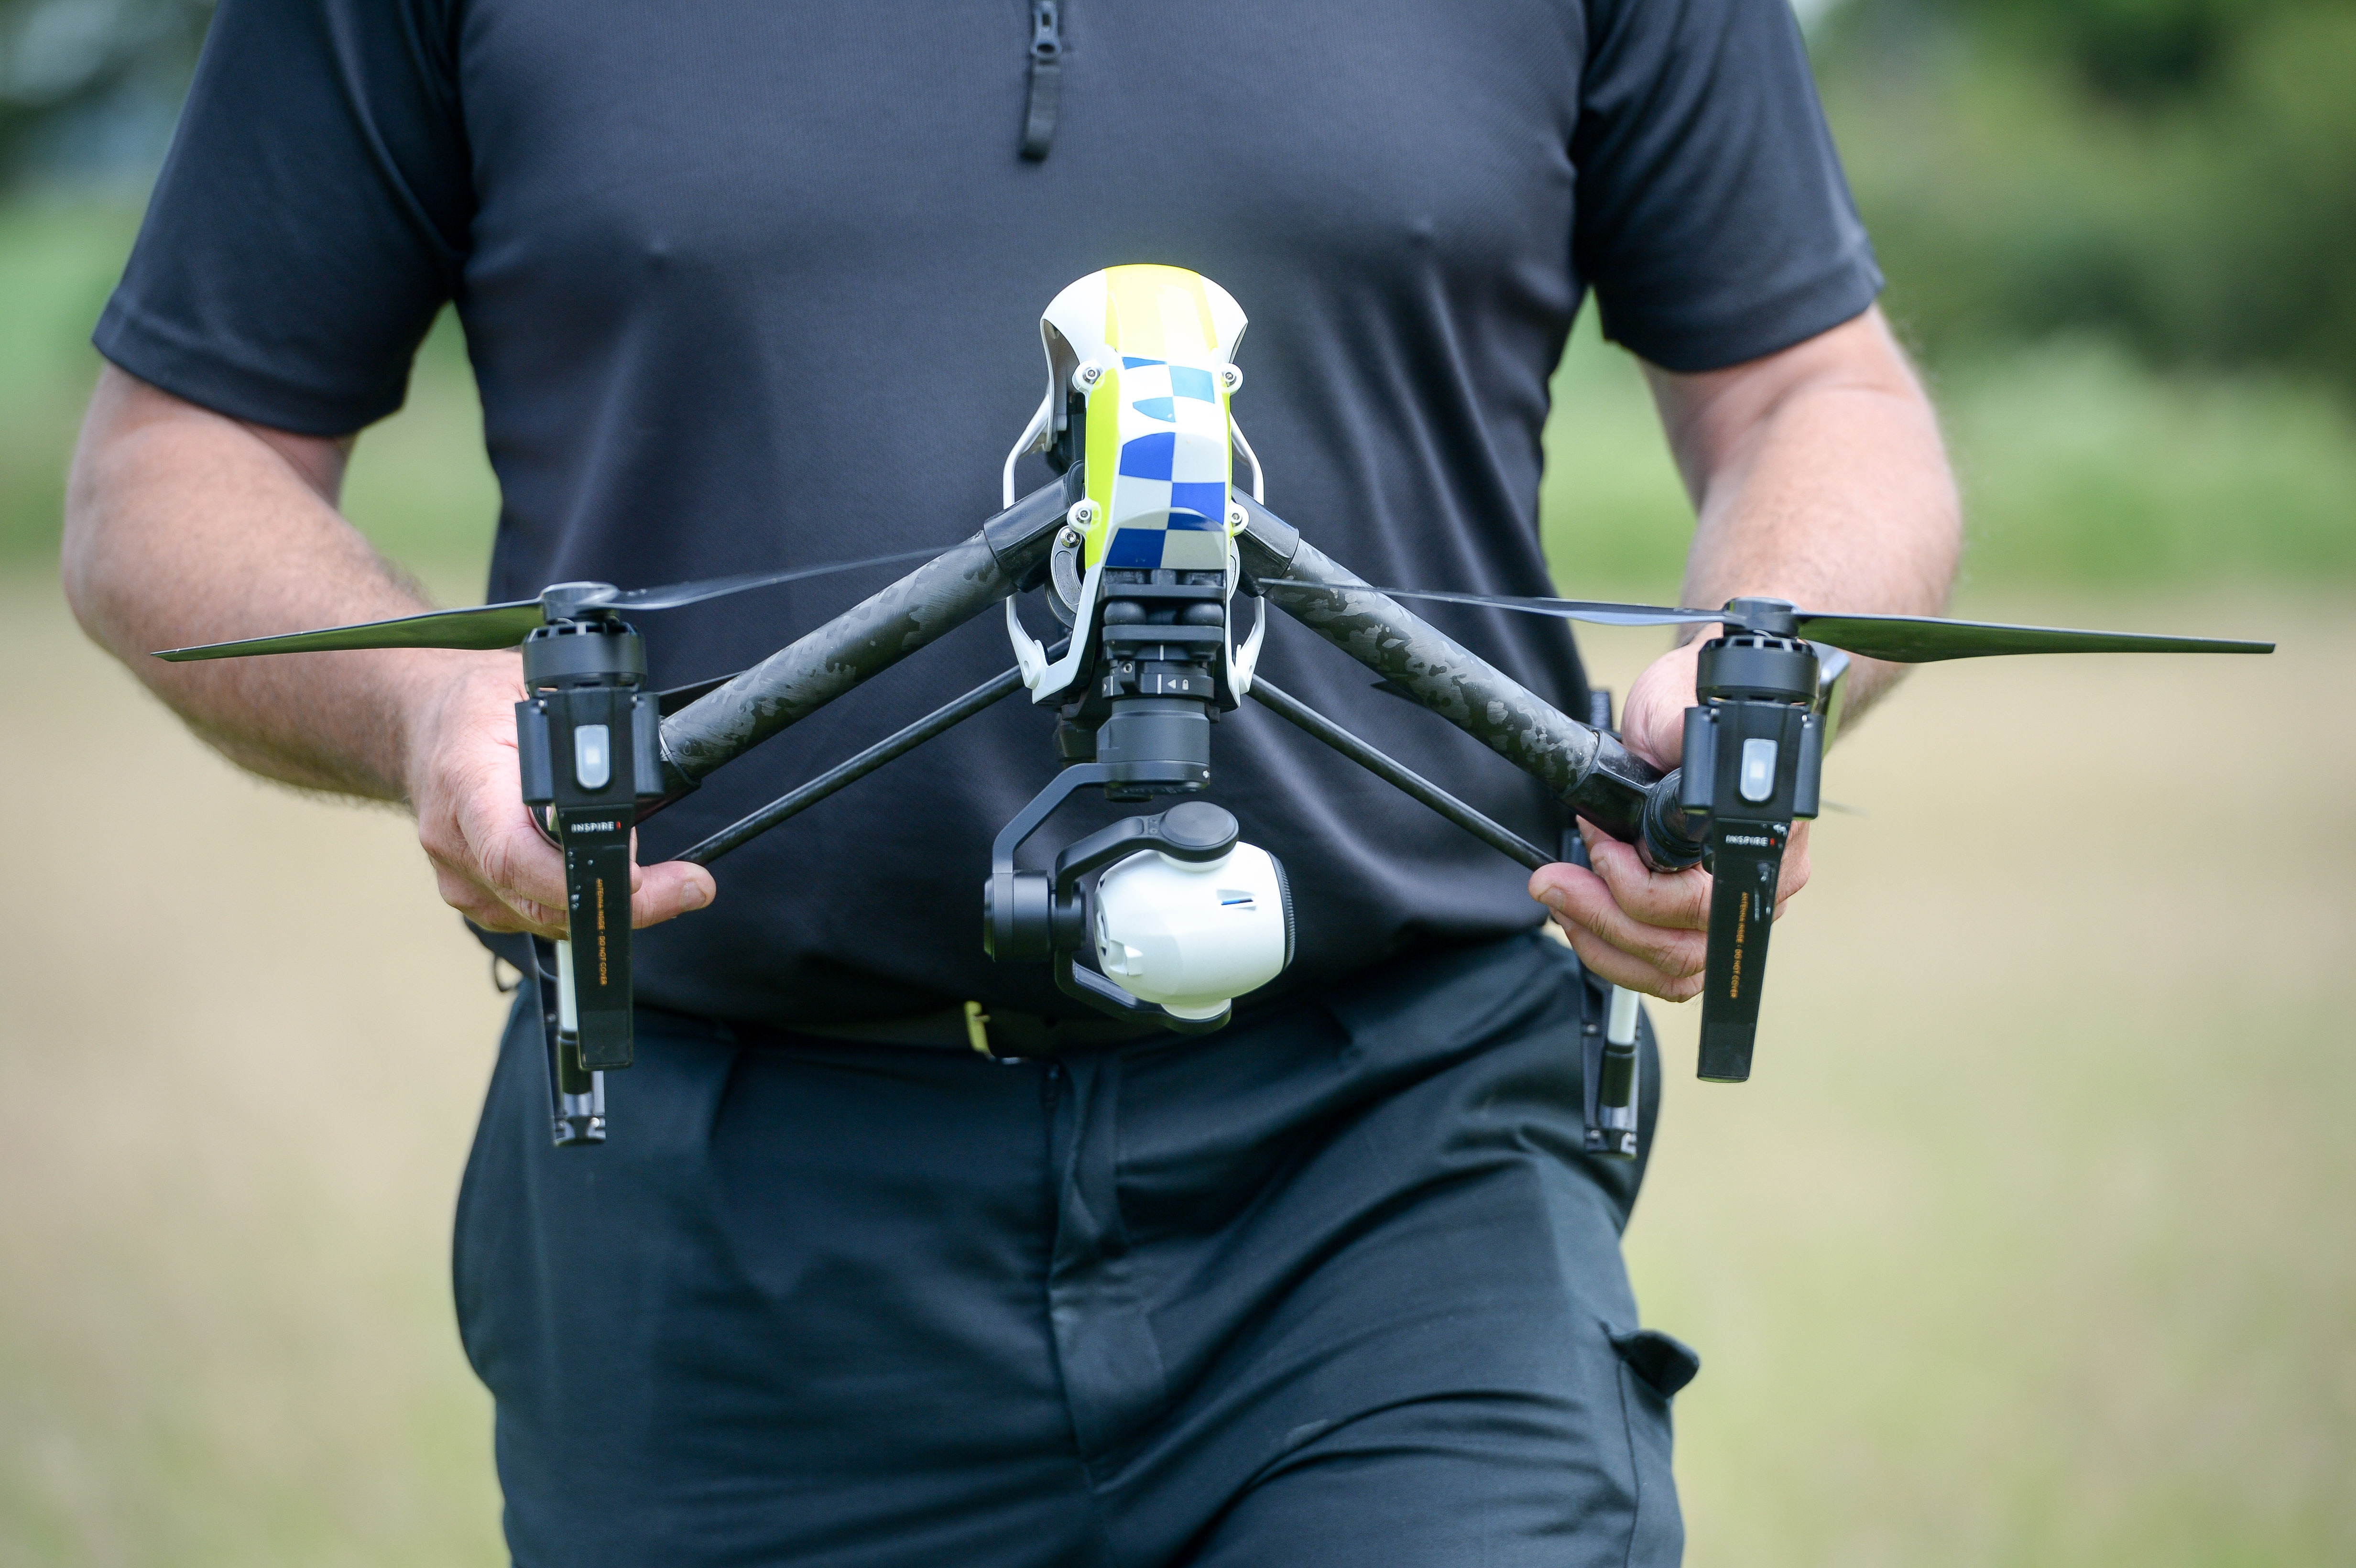 The drone in the hands of an officer